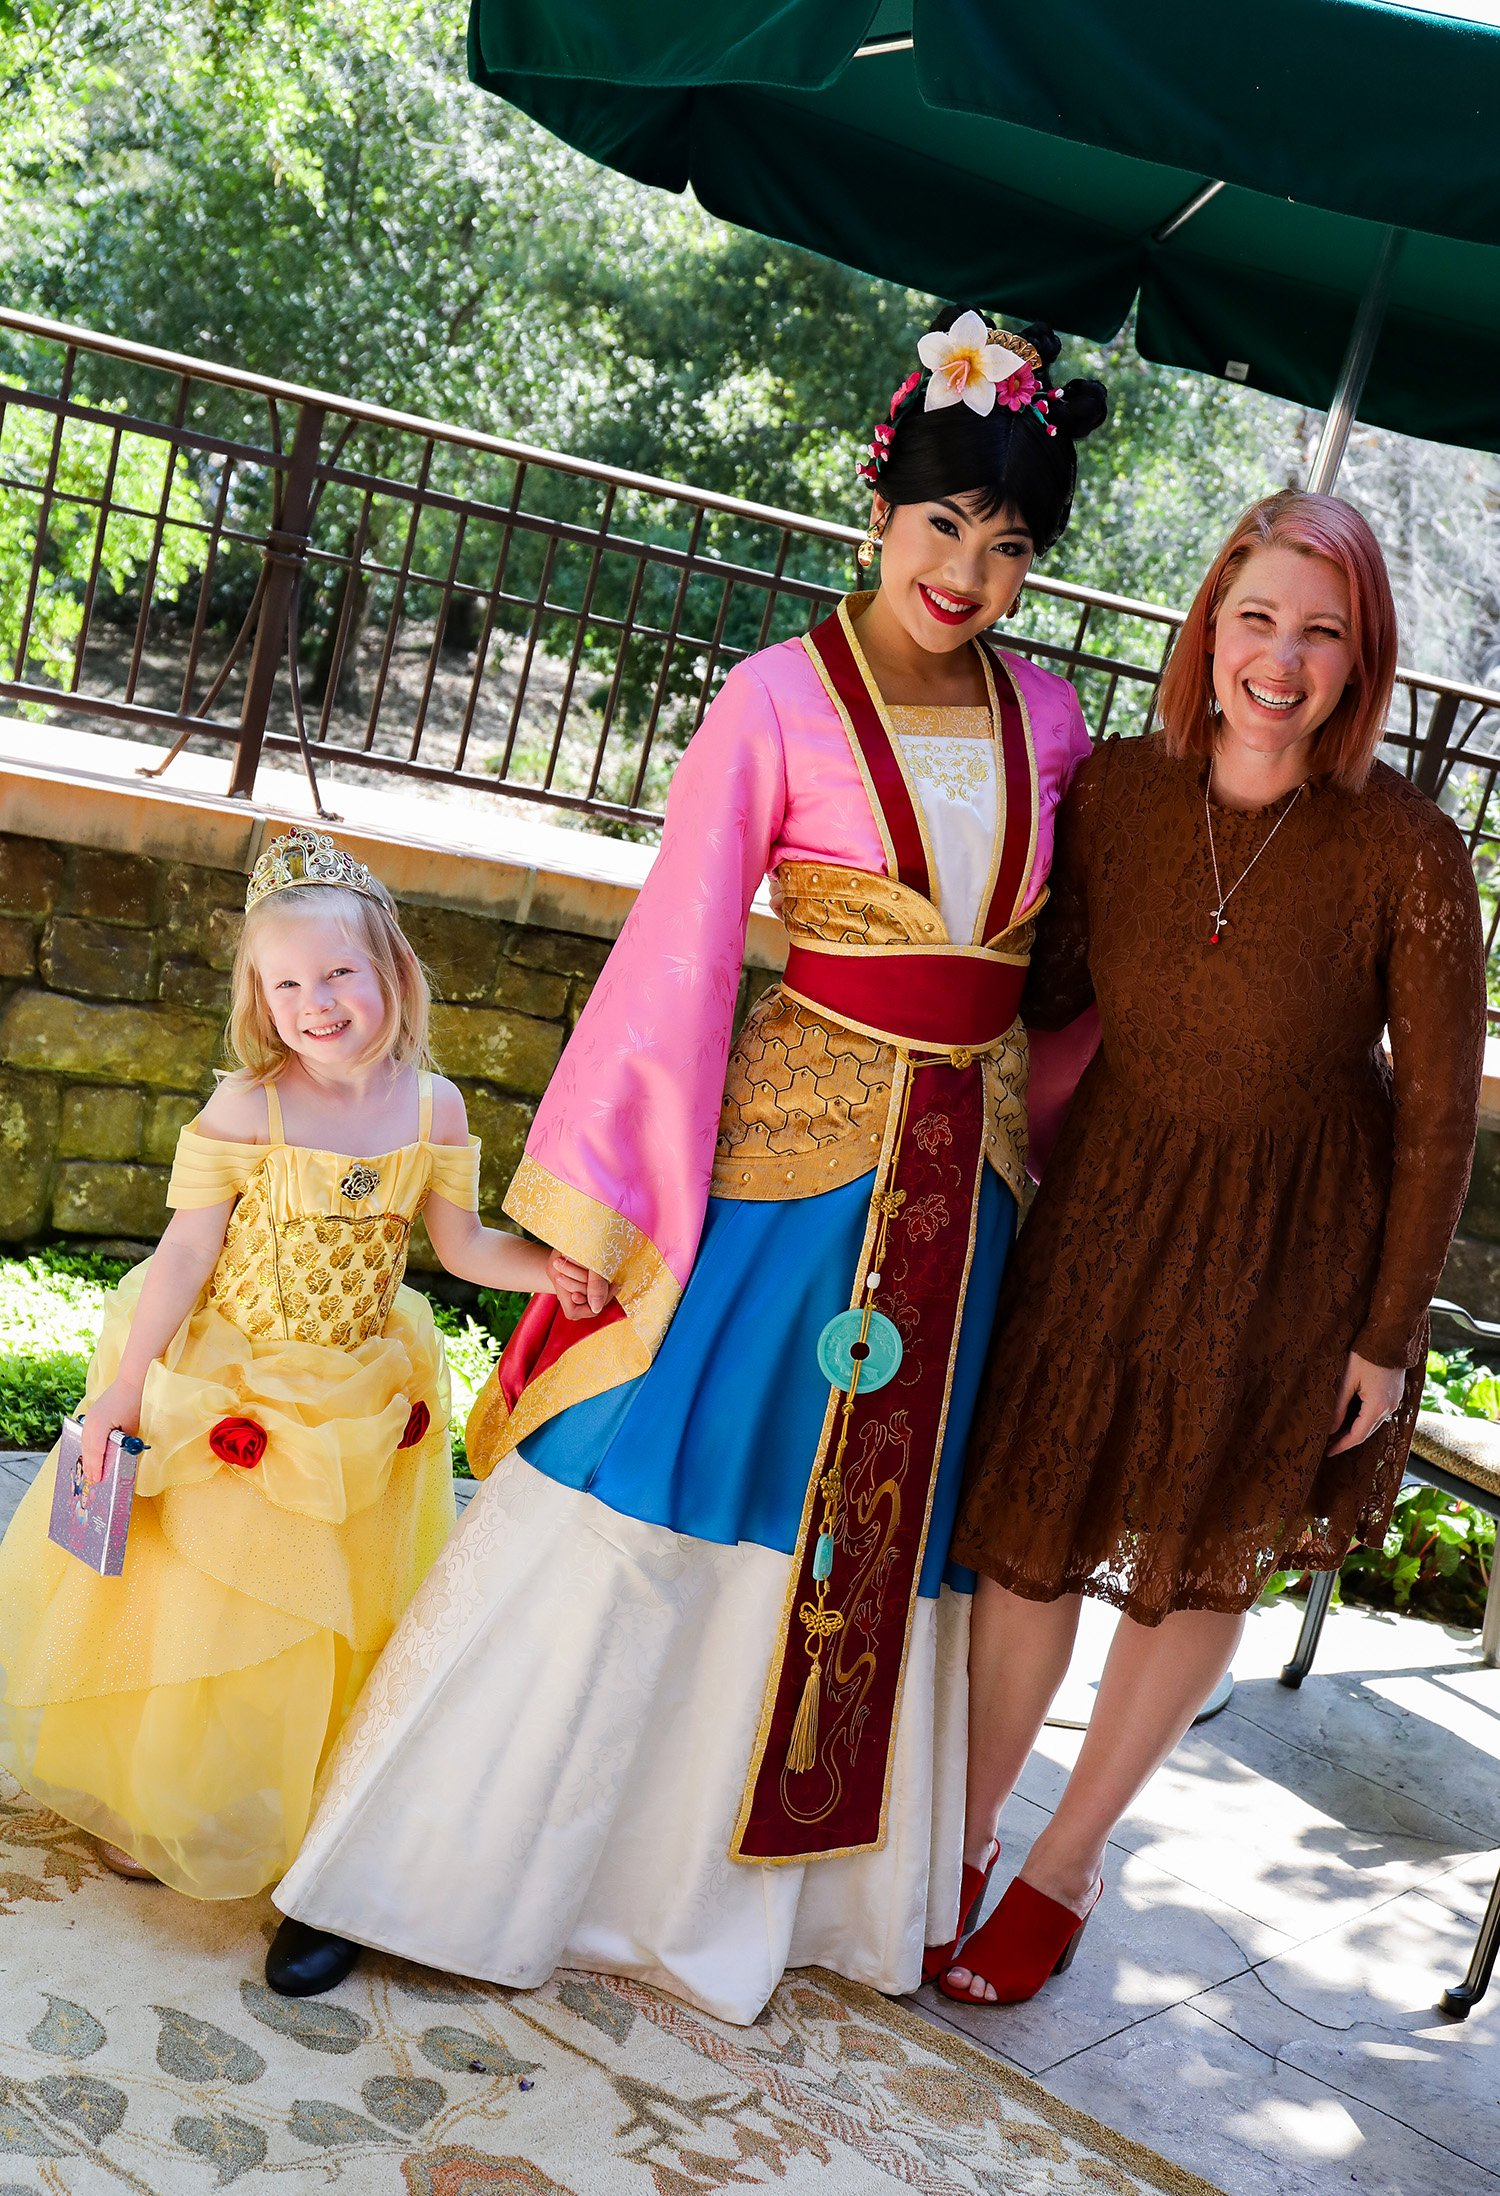 Looking for the scoop on the new Disneyland Princess Breakfast Adventures at Napa Rose? This is the ultimate guide to this Disneyland Character Dining experience.